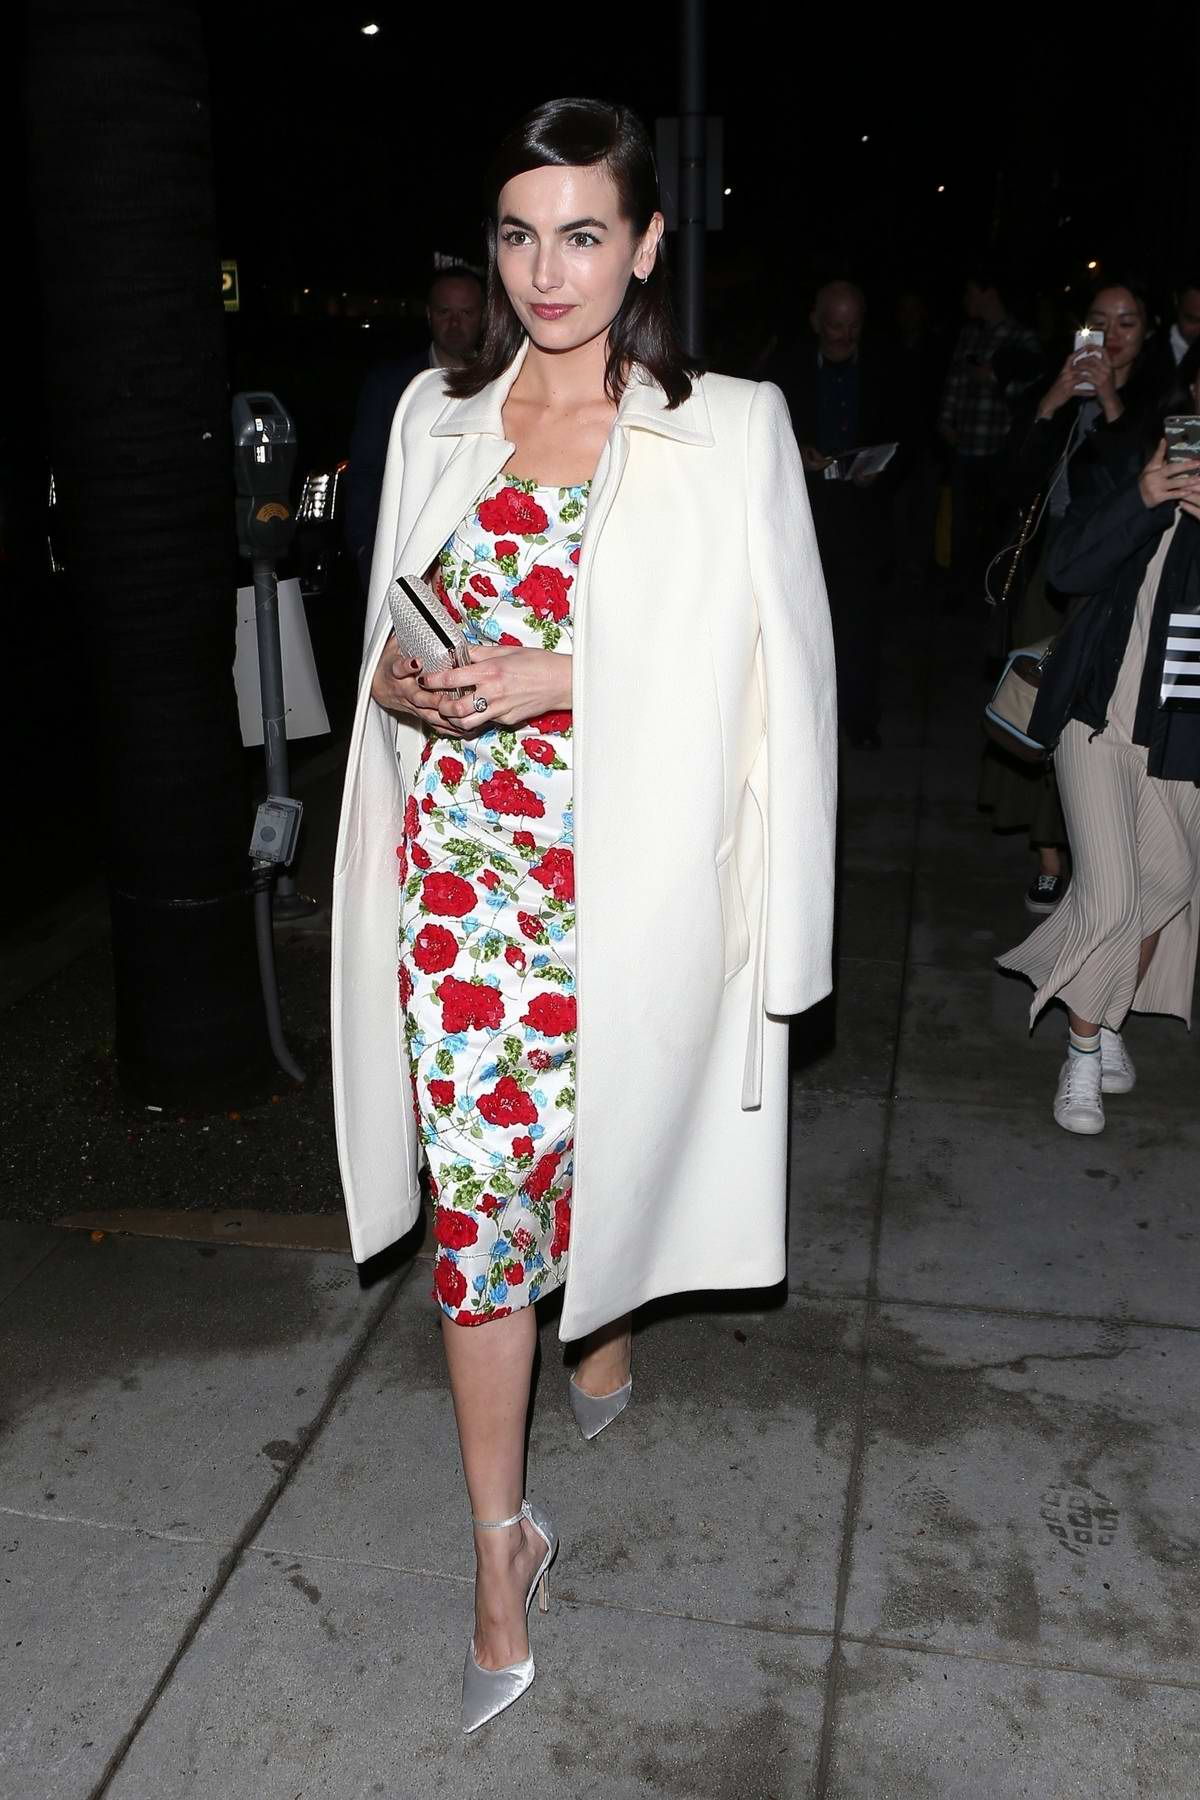 Camilla Belle attends the 11th Annual Women In Film Pre-Oscar Cocktail Party at Crustacean in Beverly Hills, Los Angeles